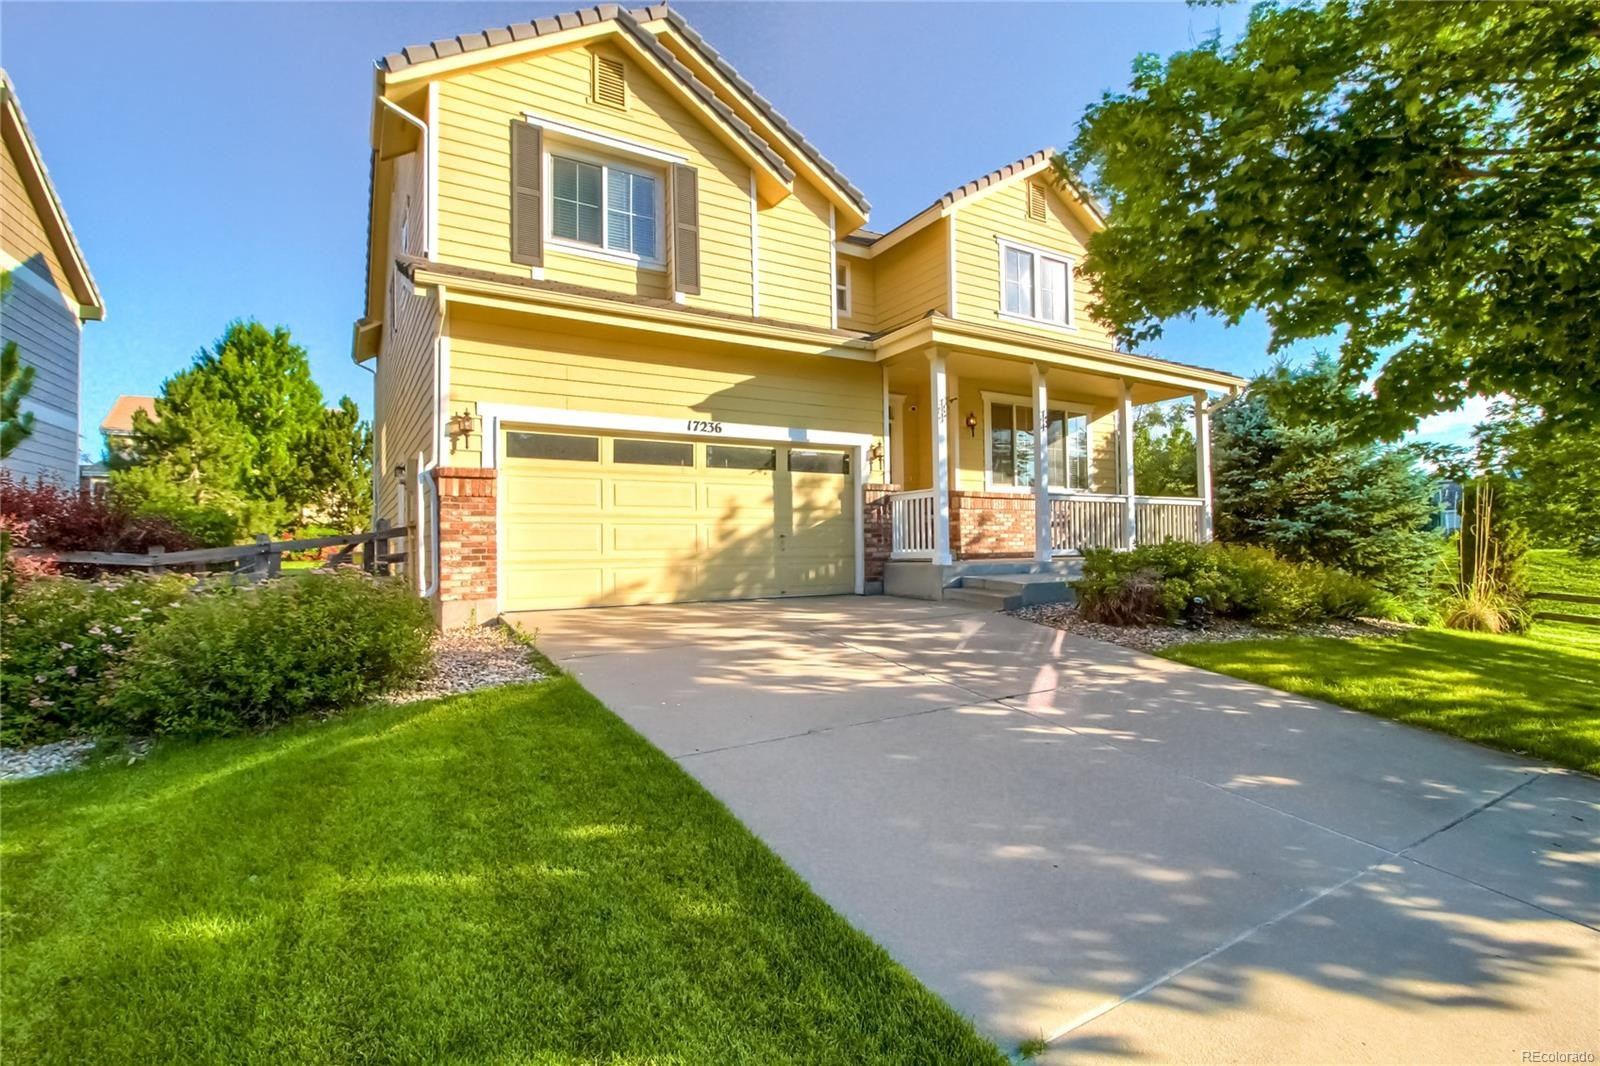 MLS# 7410337 - 2 - 17236 E Lake Lane, Aurora, CO 80016